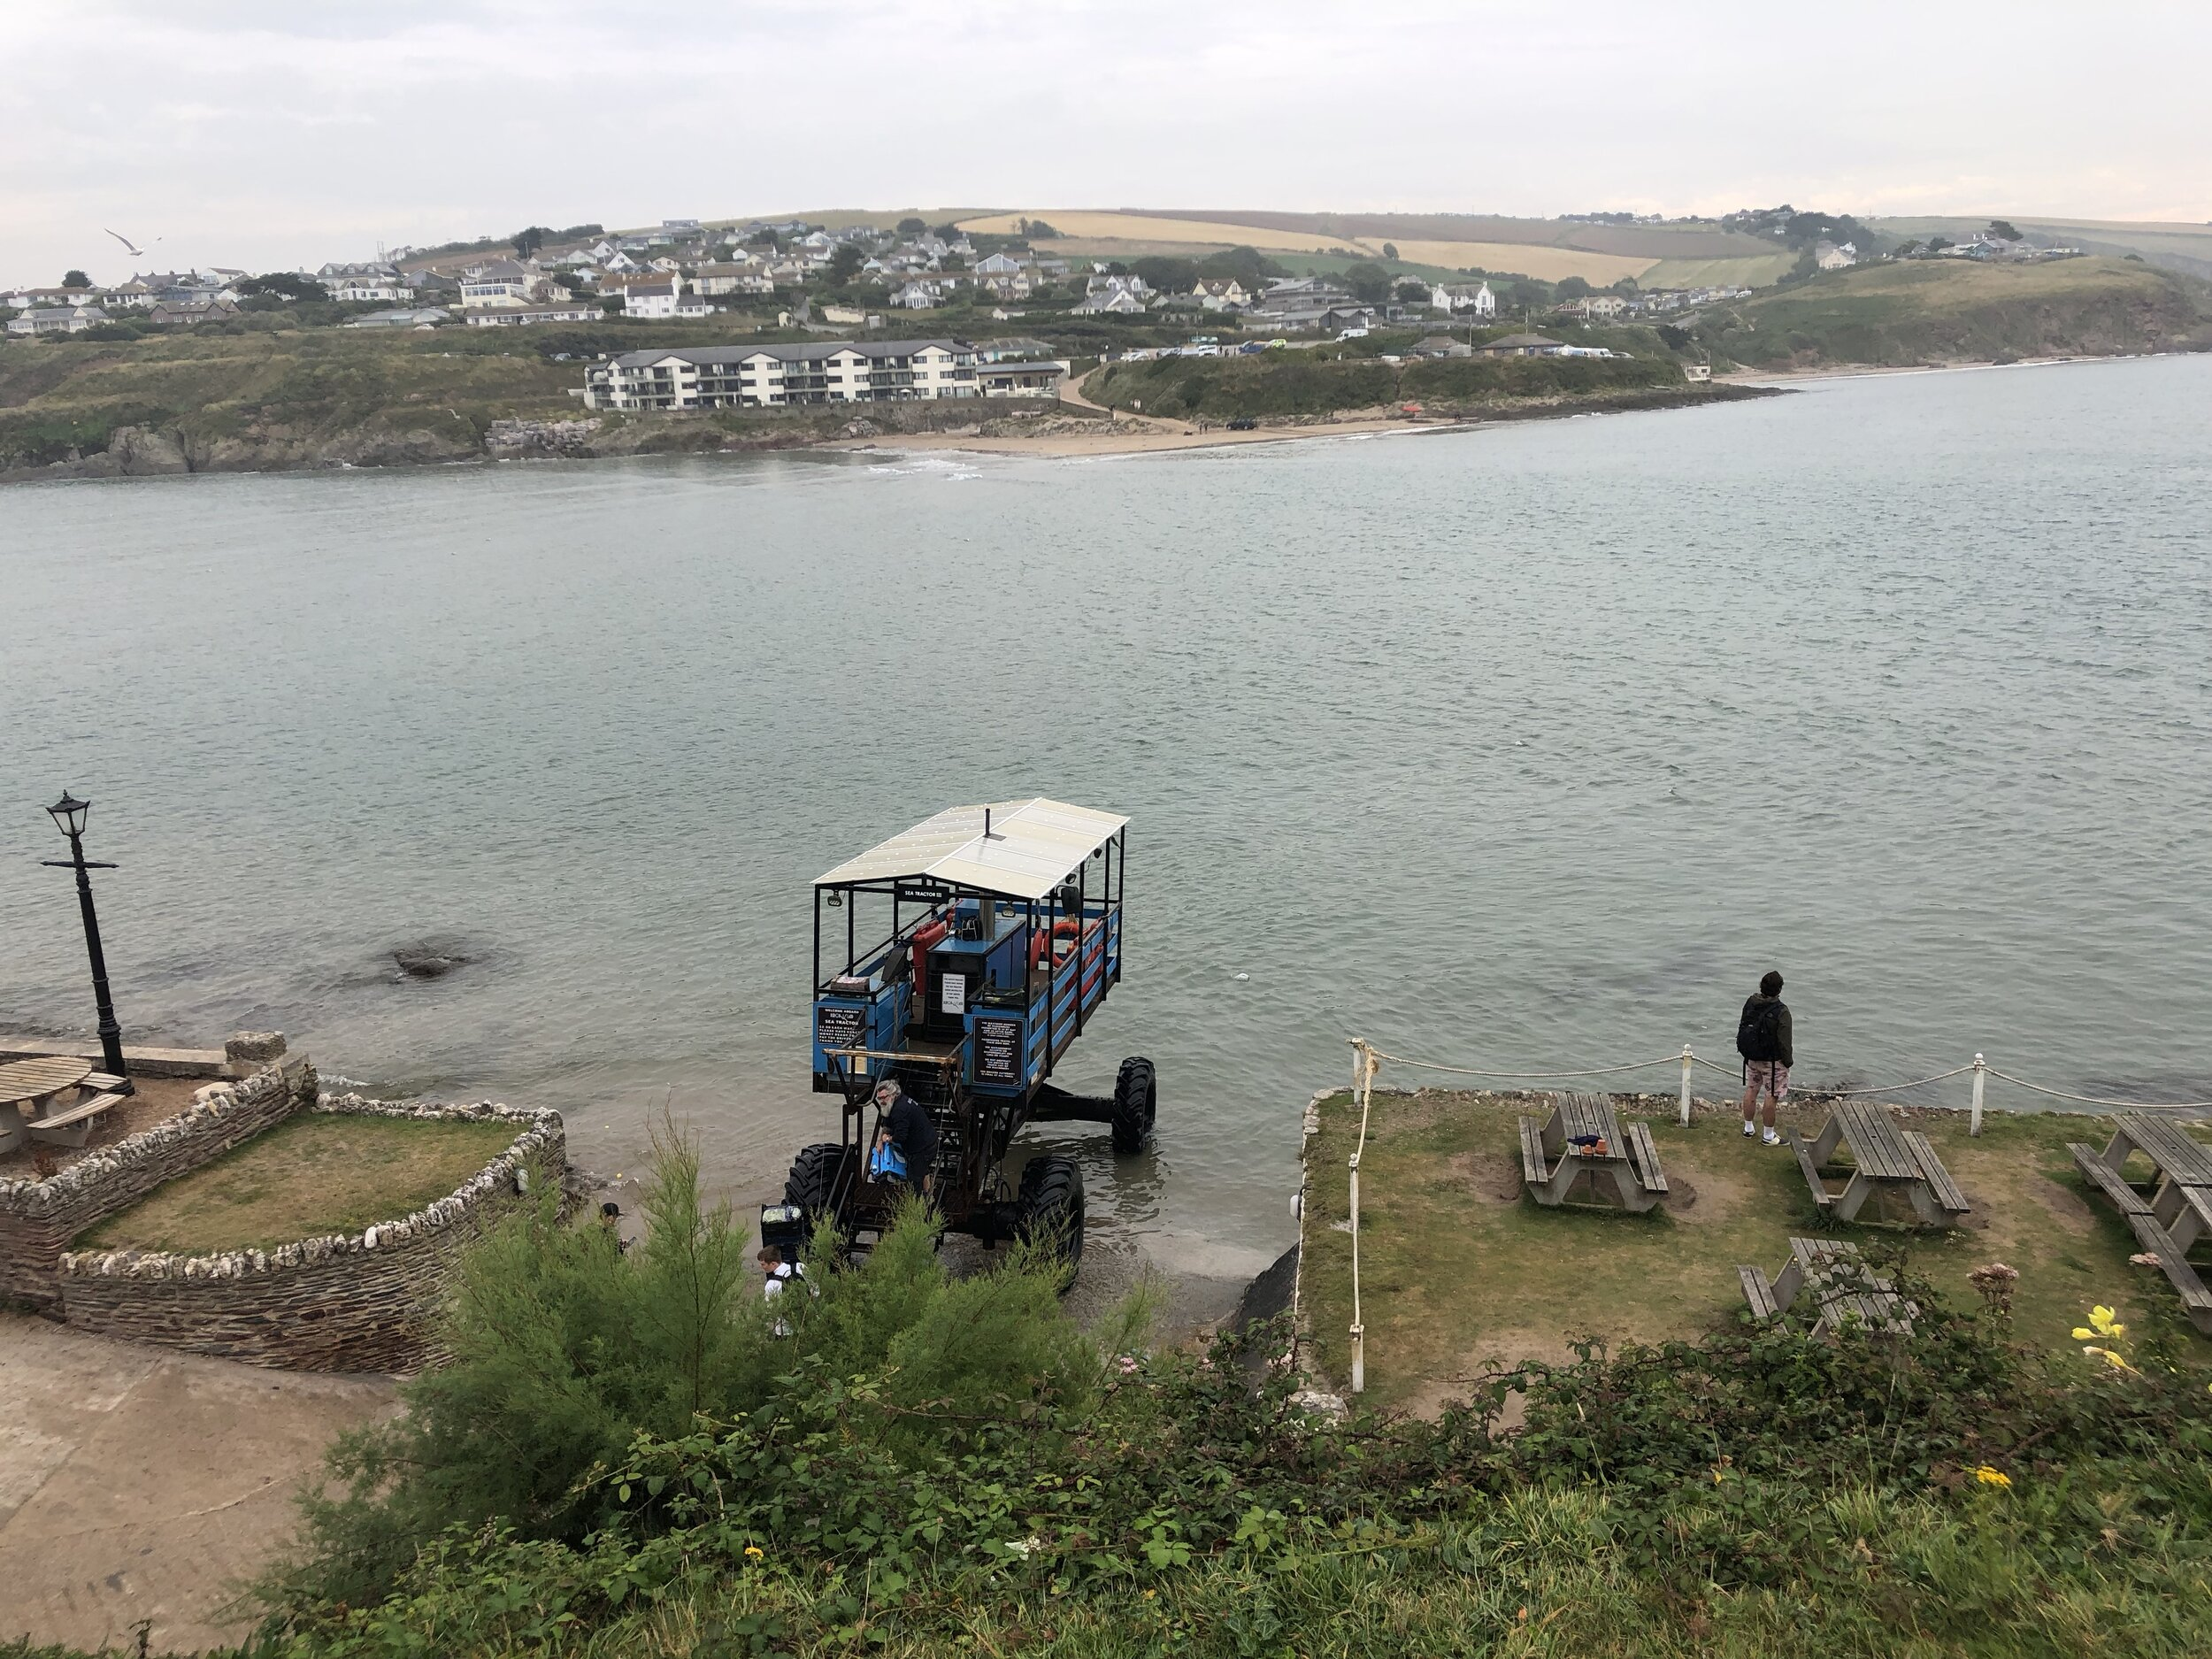 The view from Burgh Island and the sea tractor